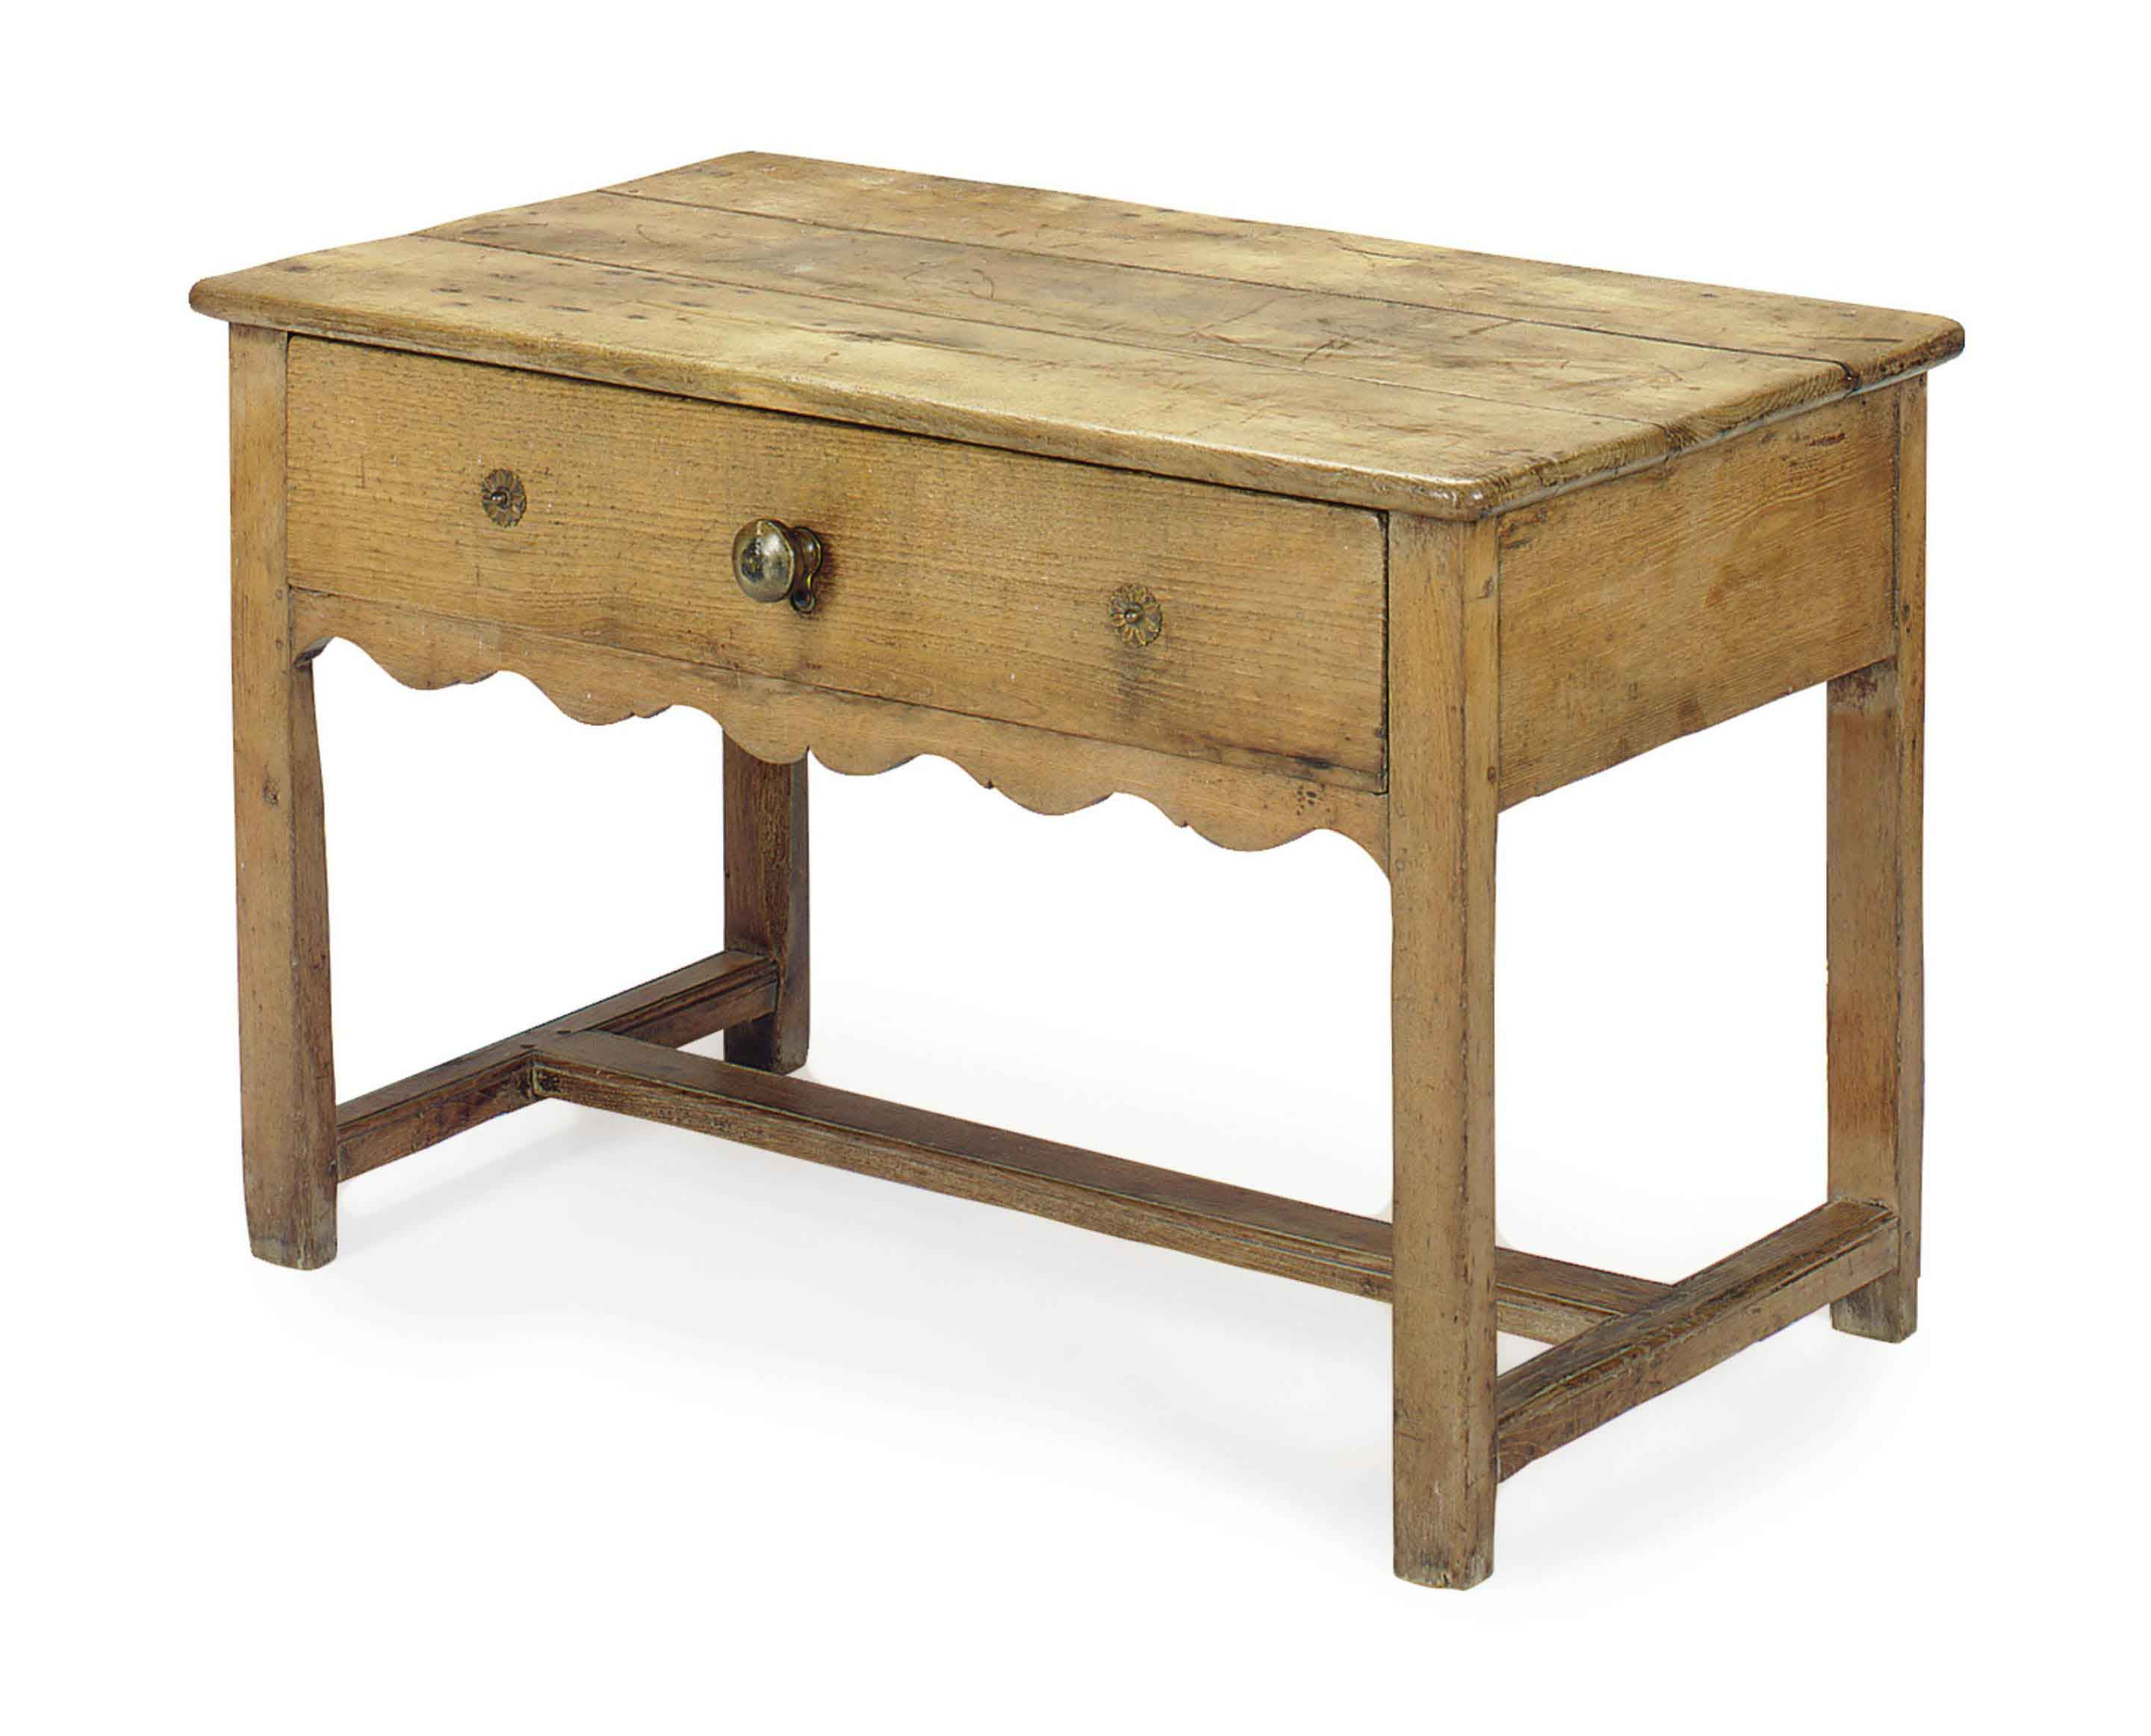 A FRENCH PROVINCIAL OAK SIDE TABLE,